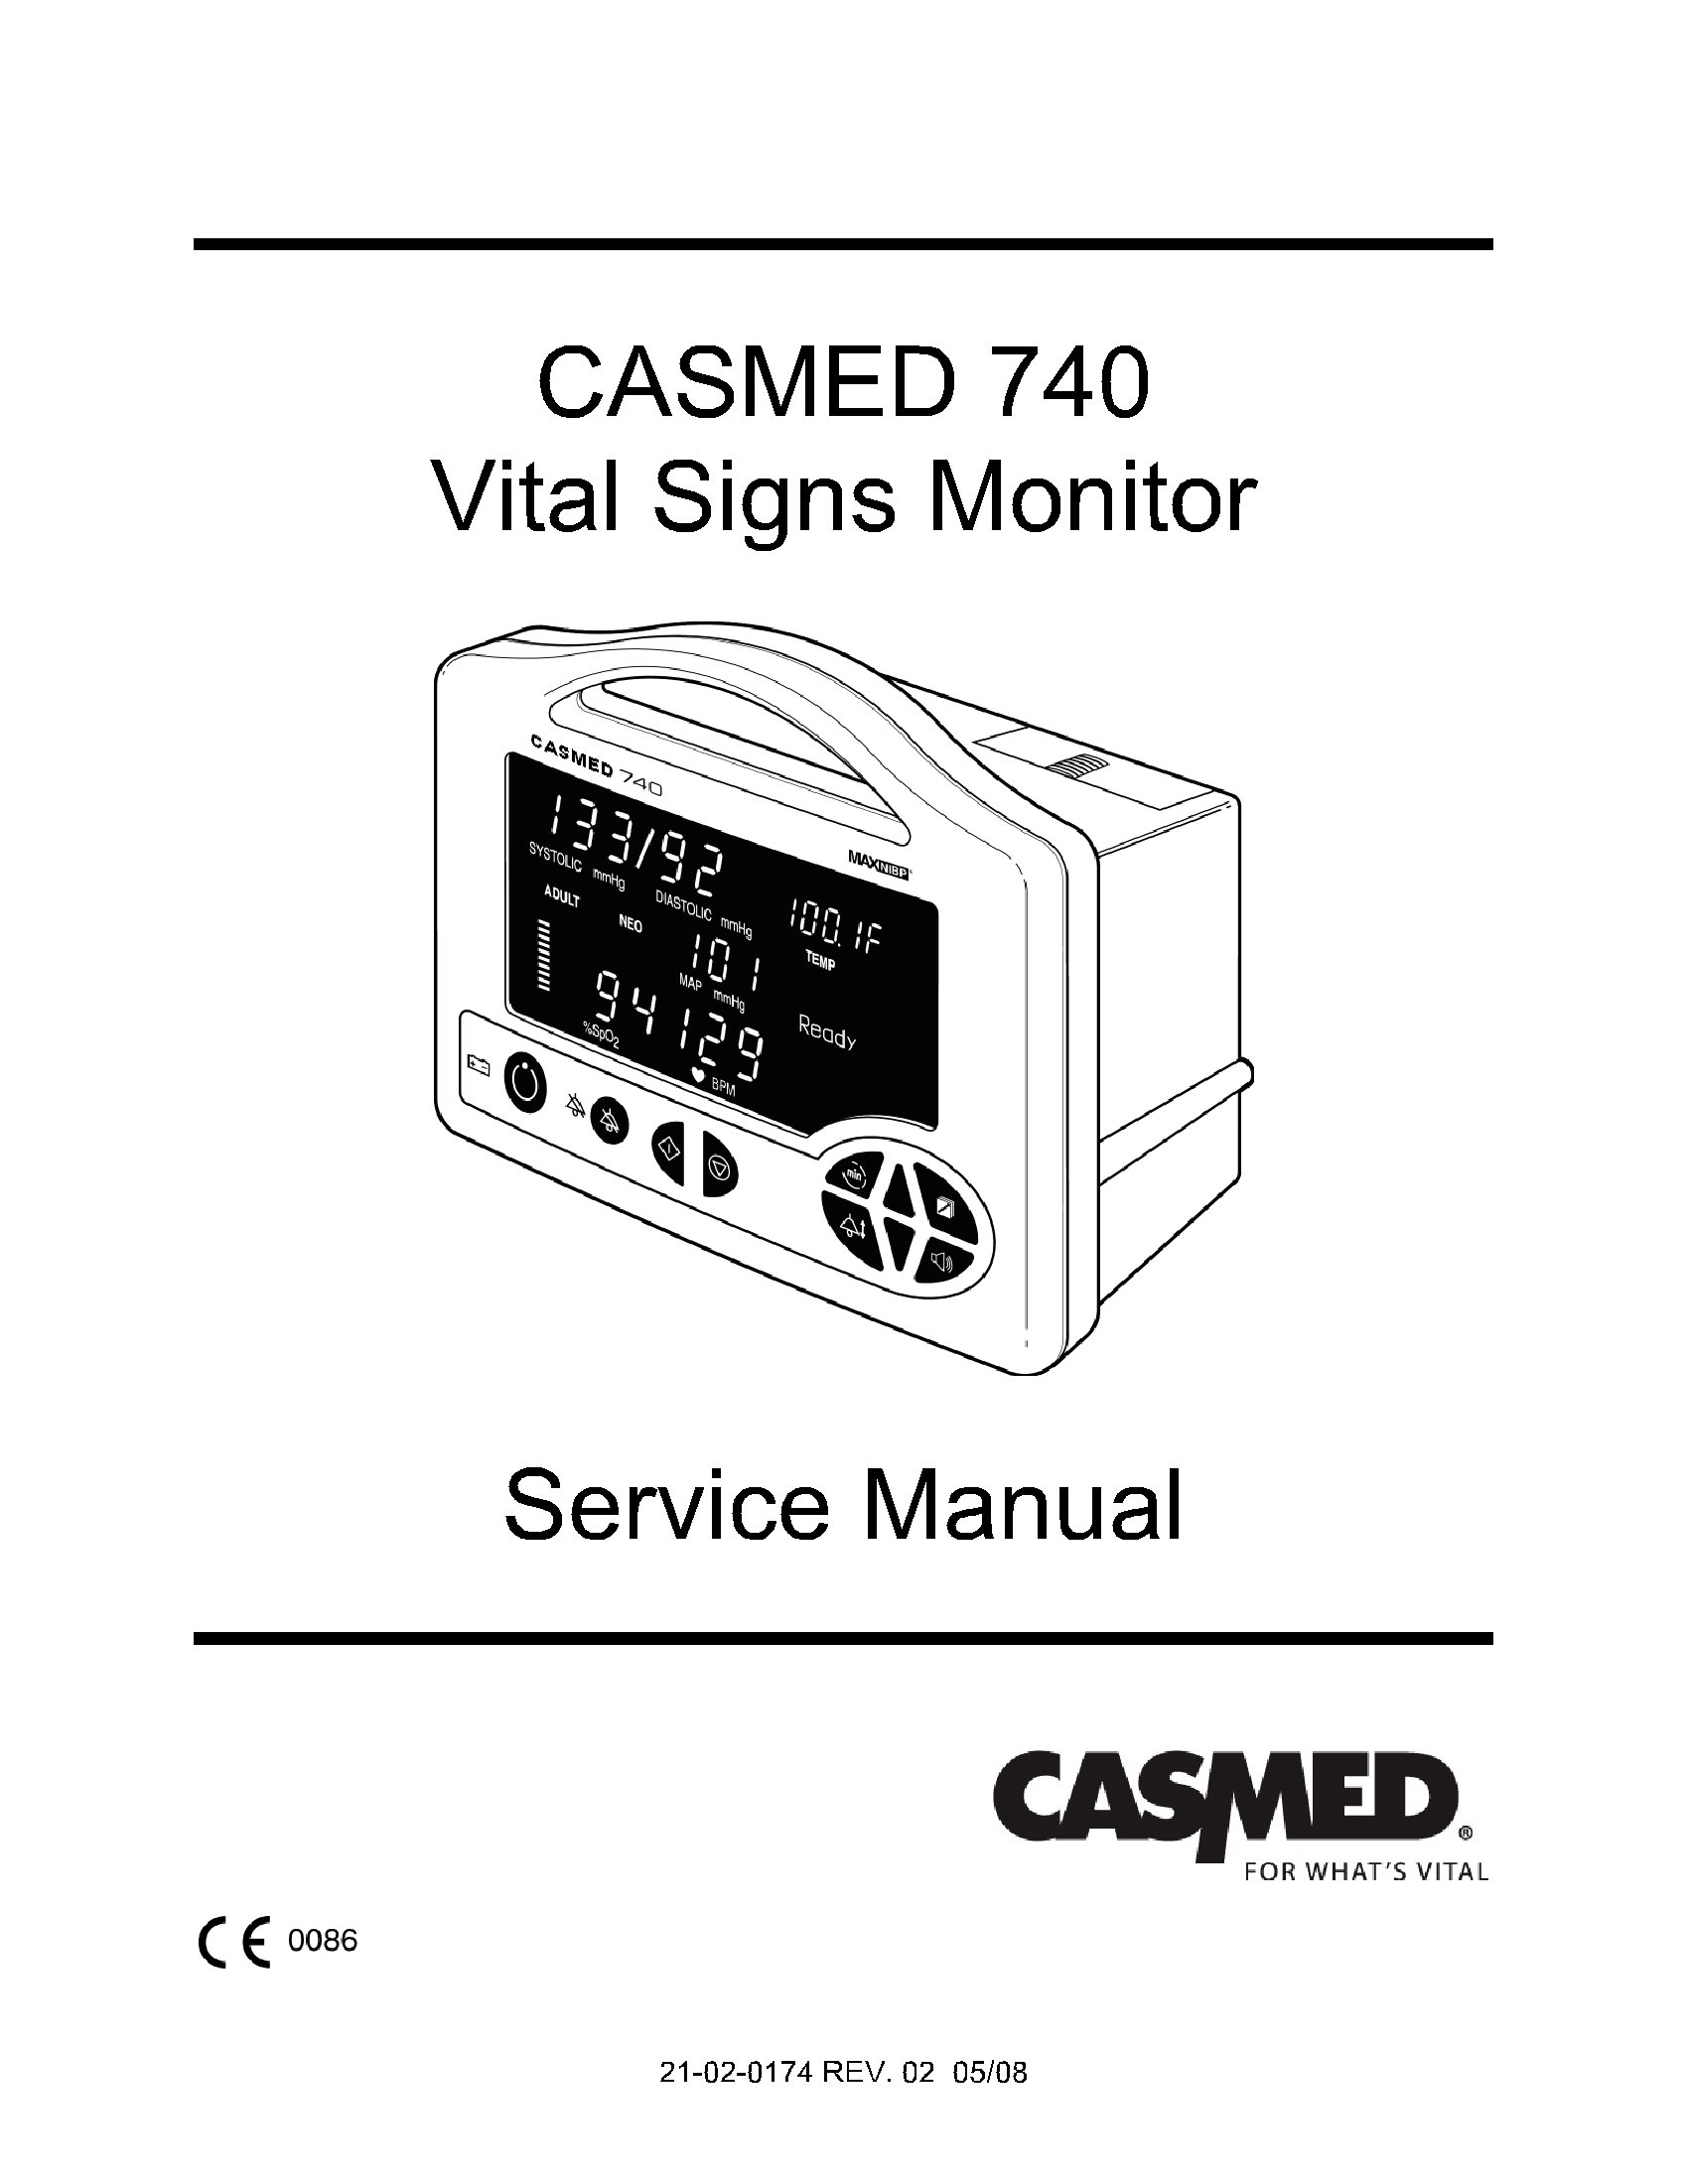 Casmed 740 Service manual